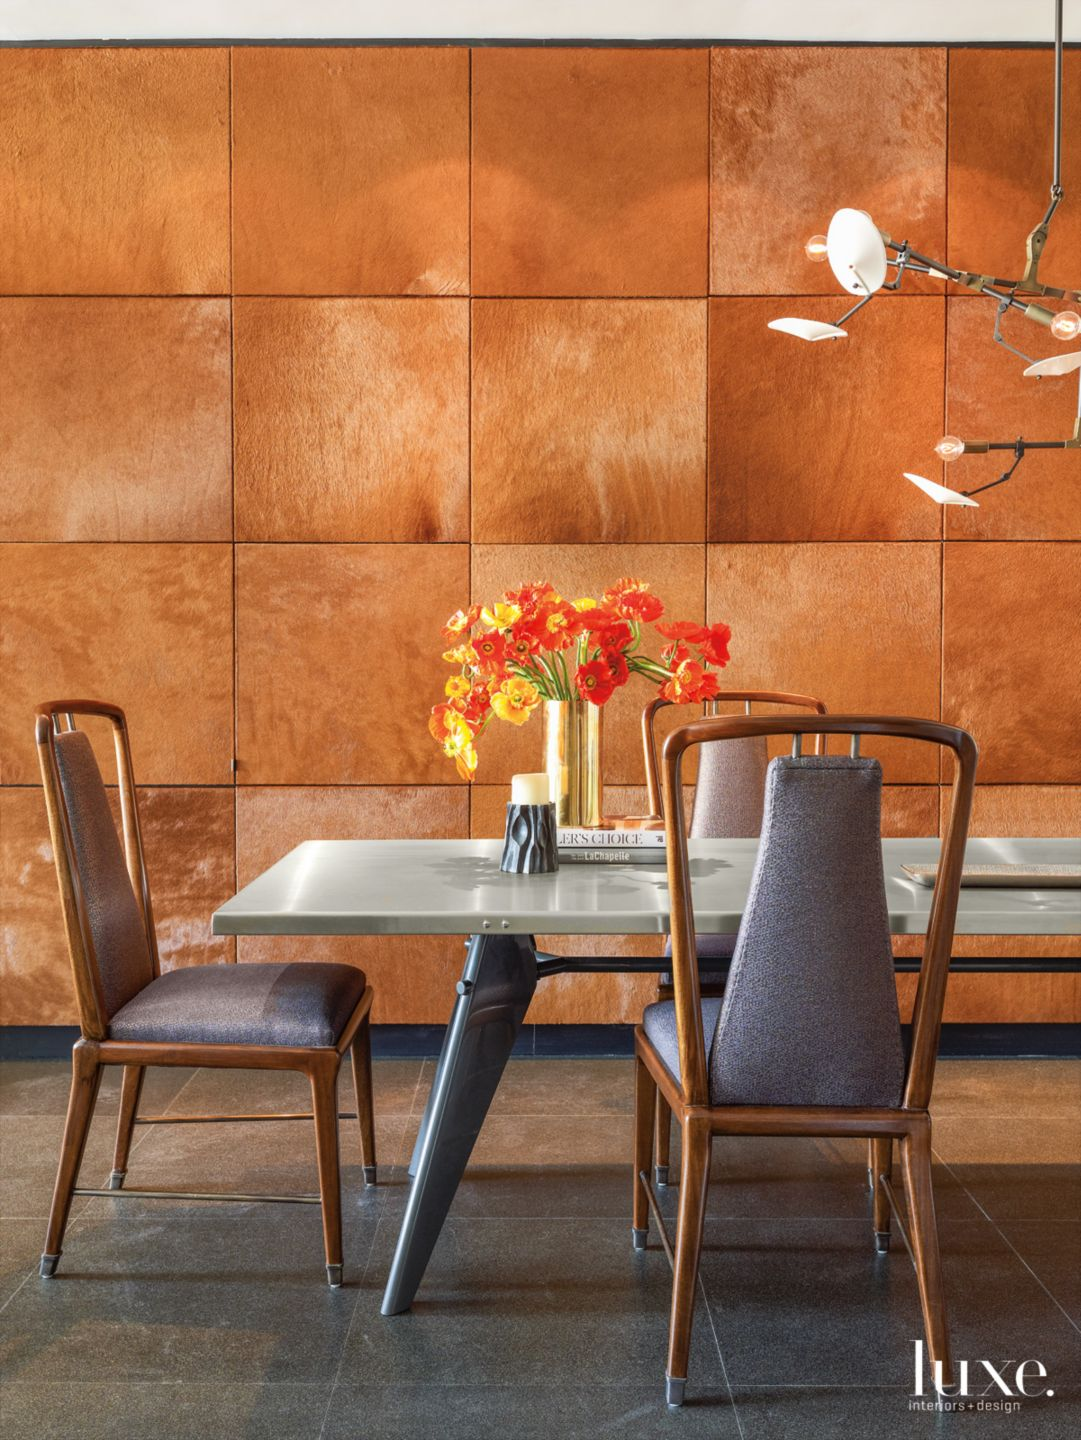 Organic Pieces Bring Heart to Fashionable New York City Apartment